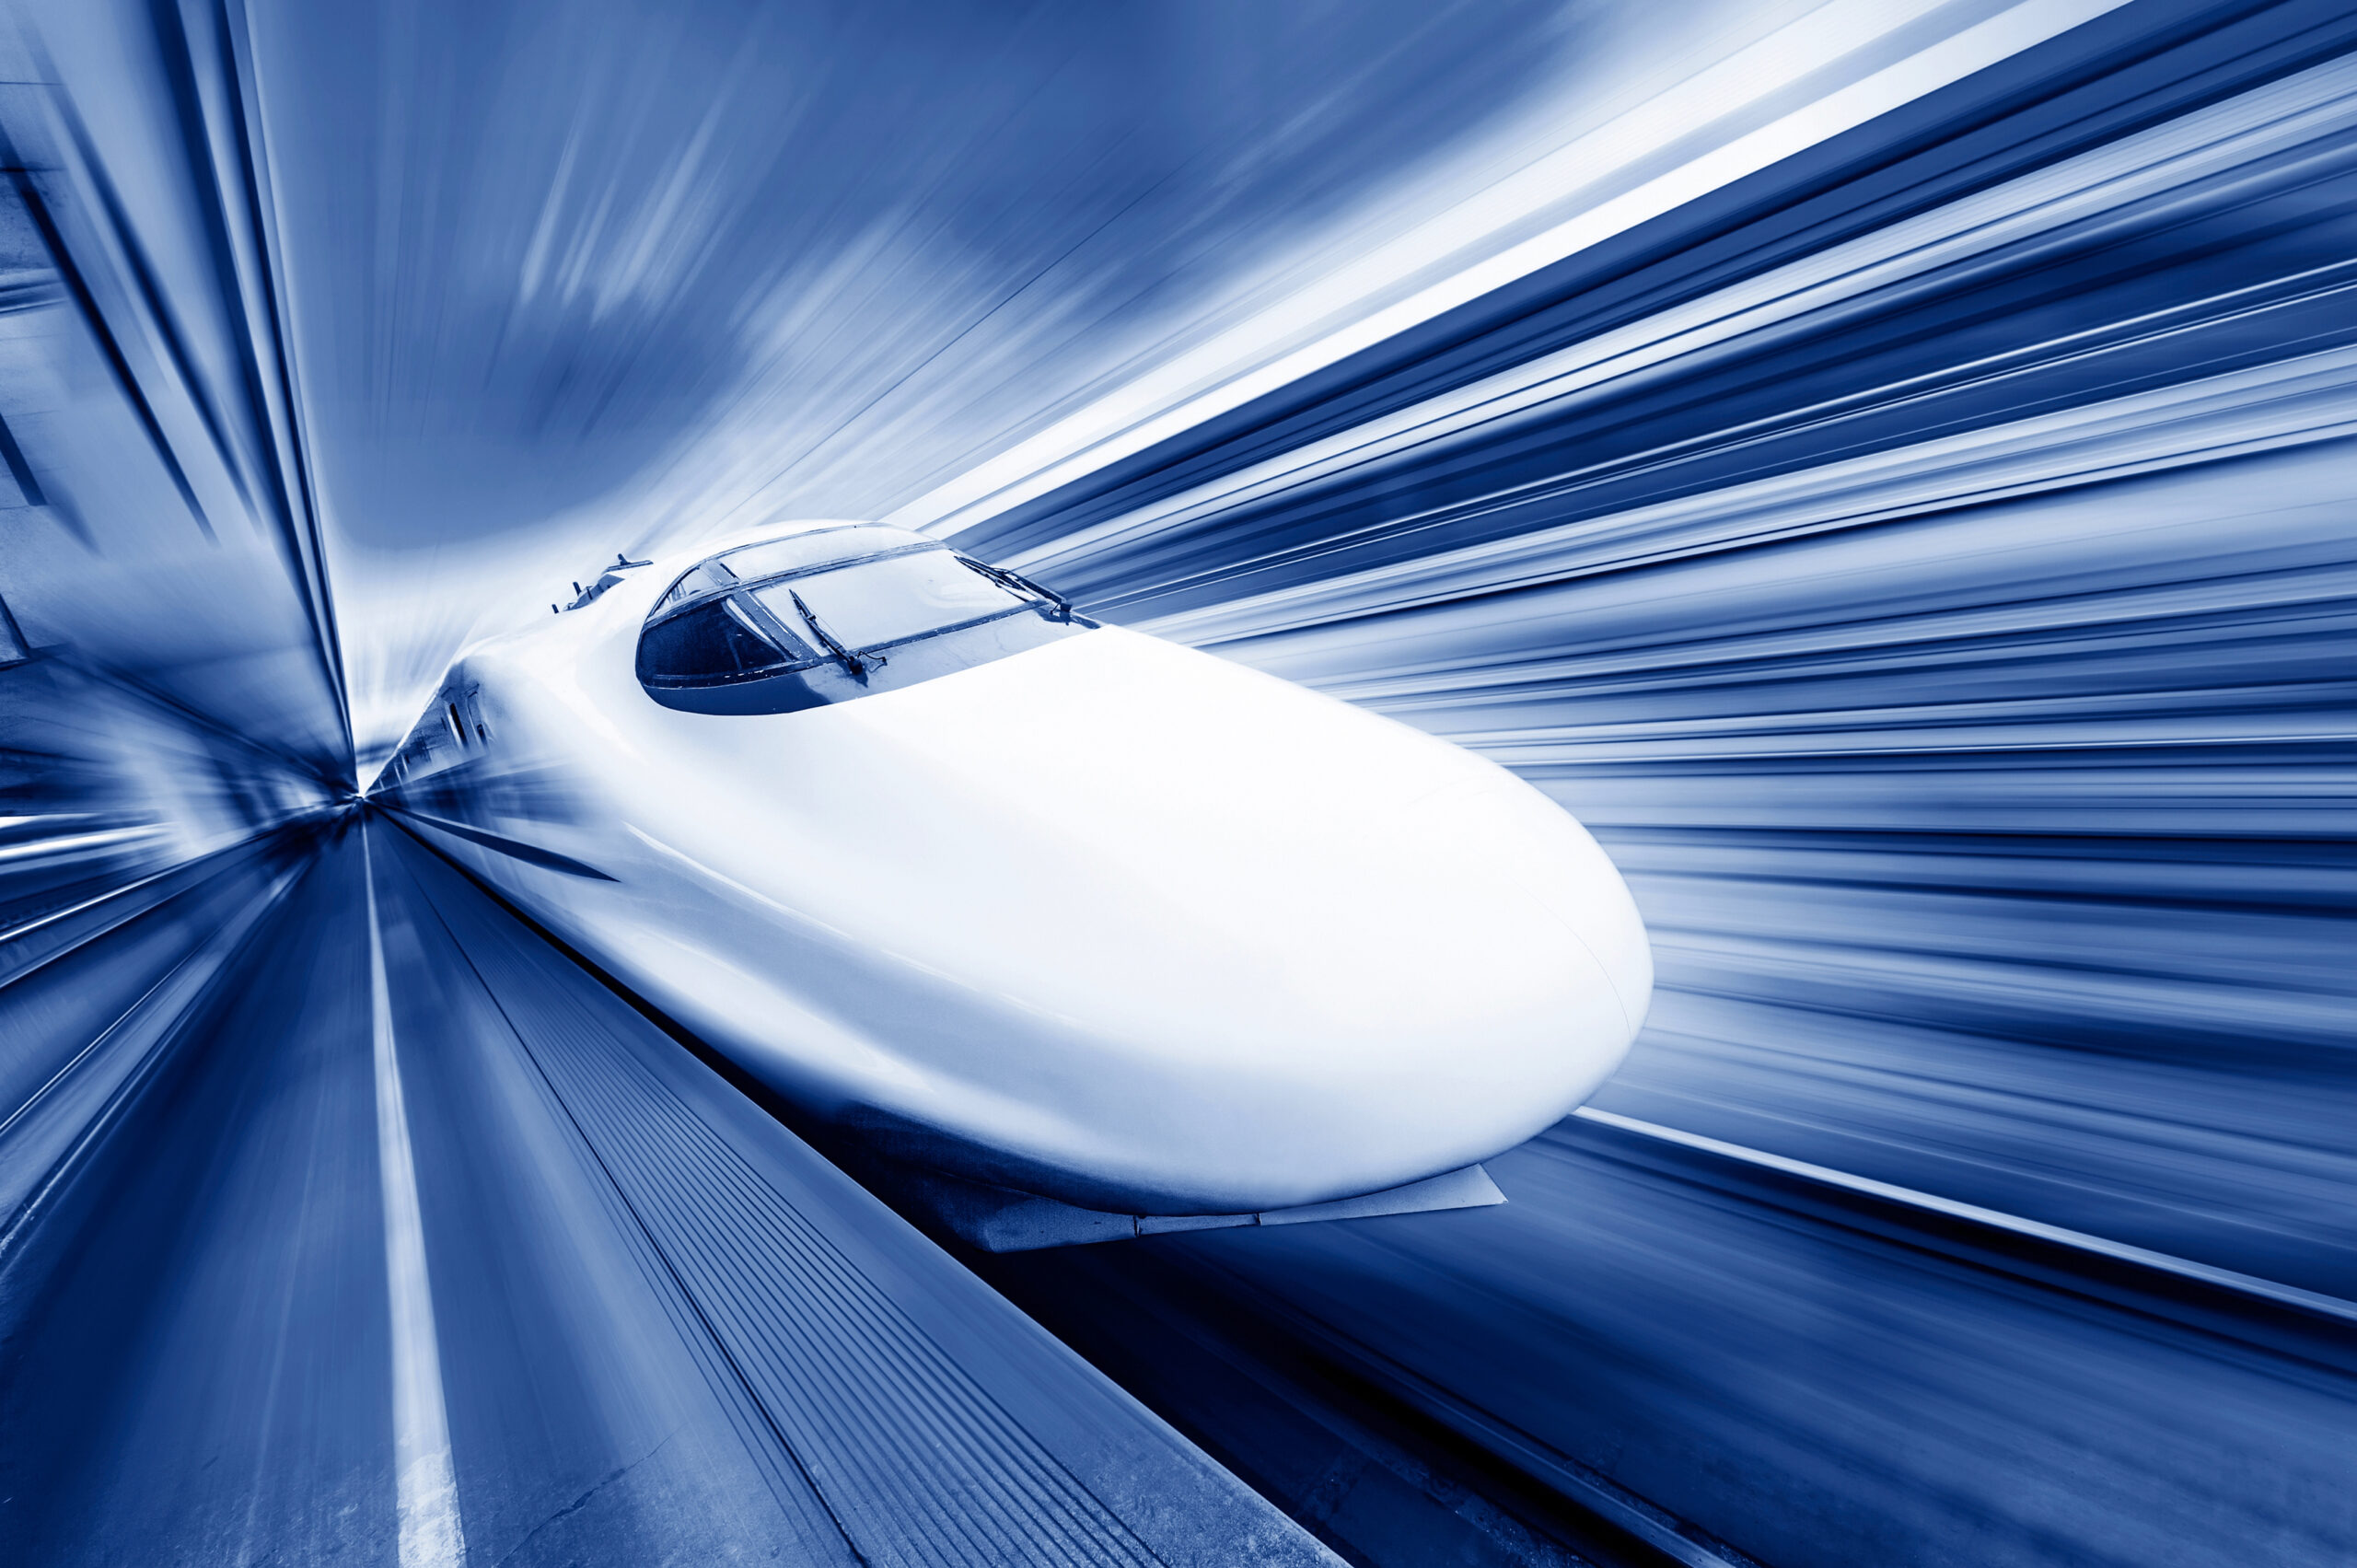 BULLET TRAINS SPEEDING UP PROPERTY DEMAND IN NOIDA, SECTOR 144.